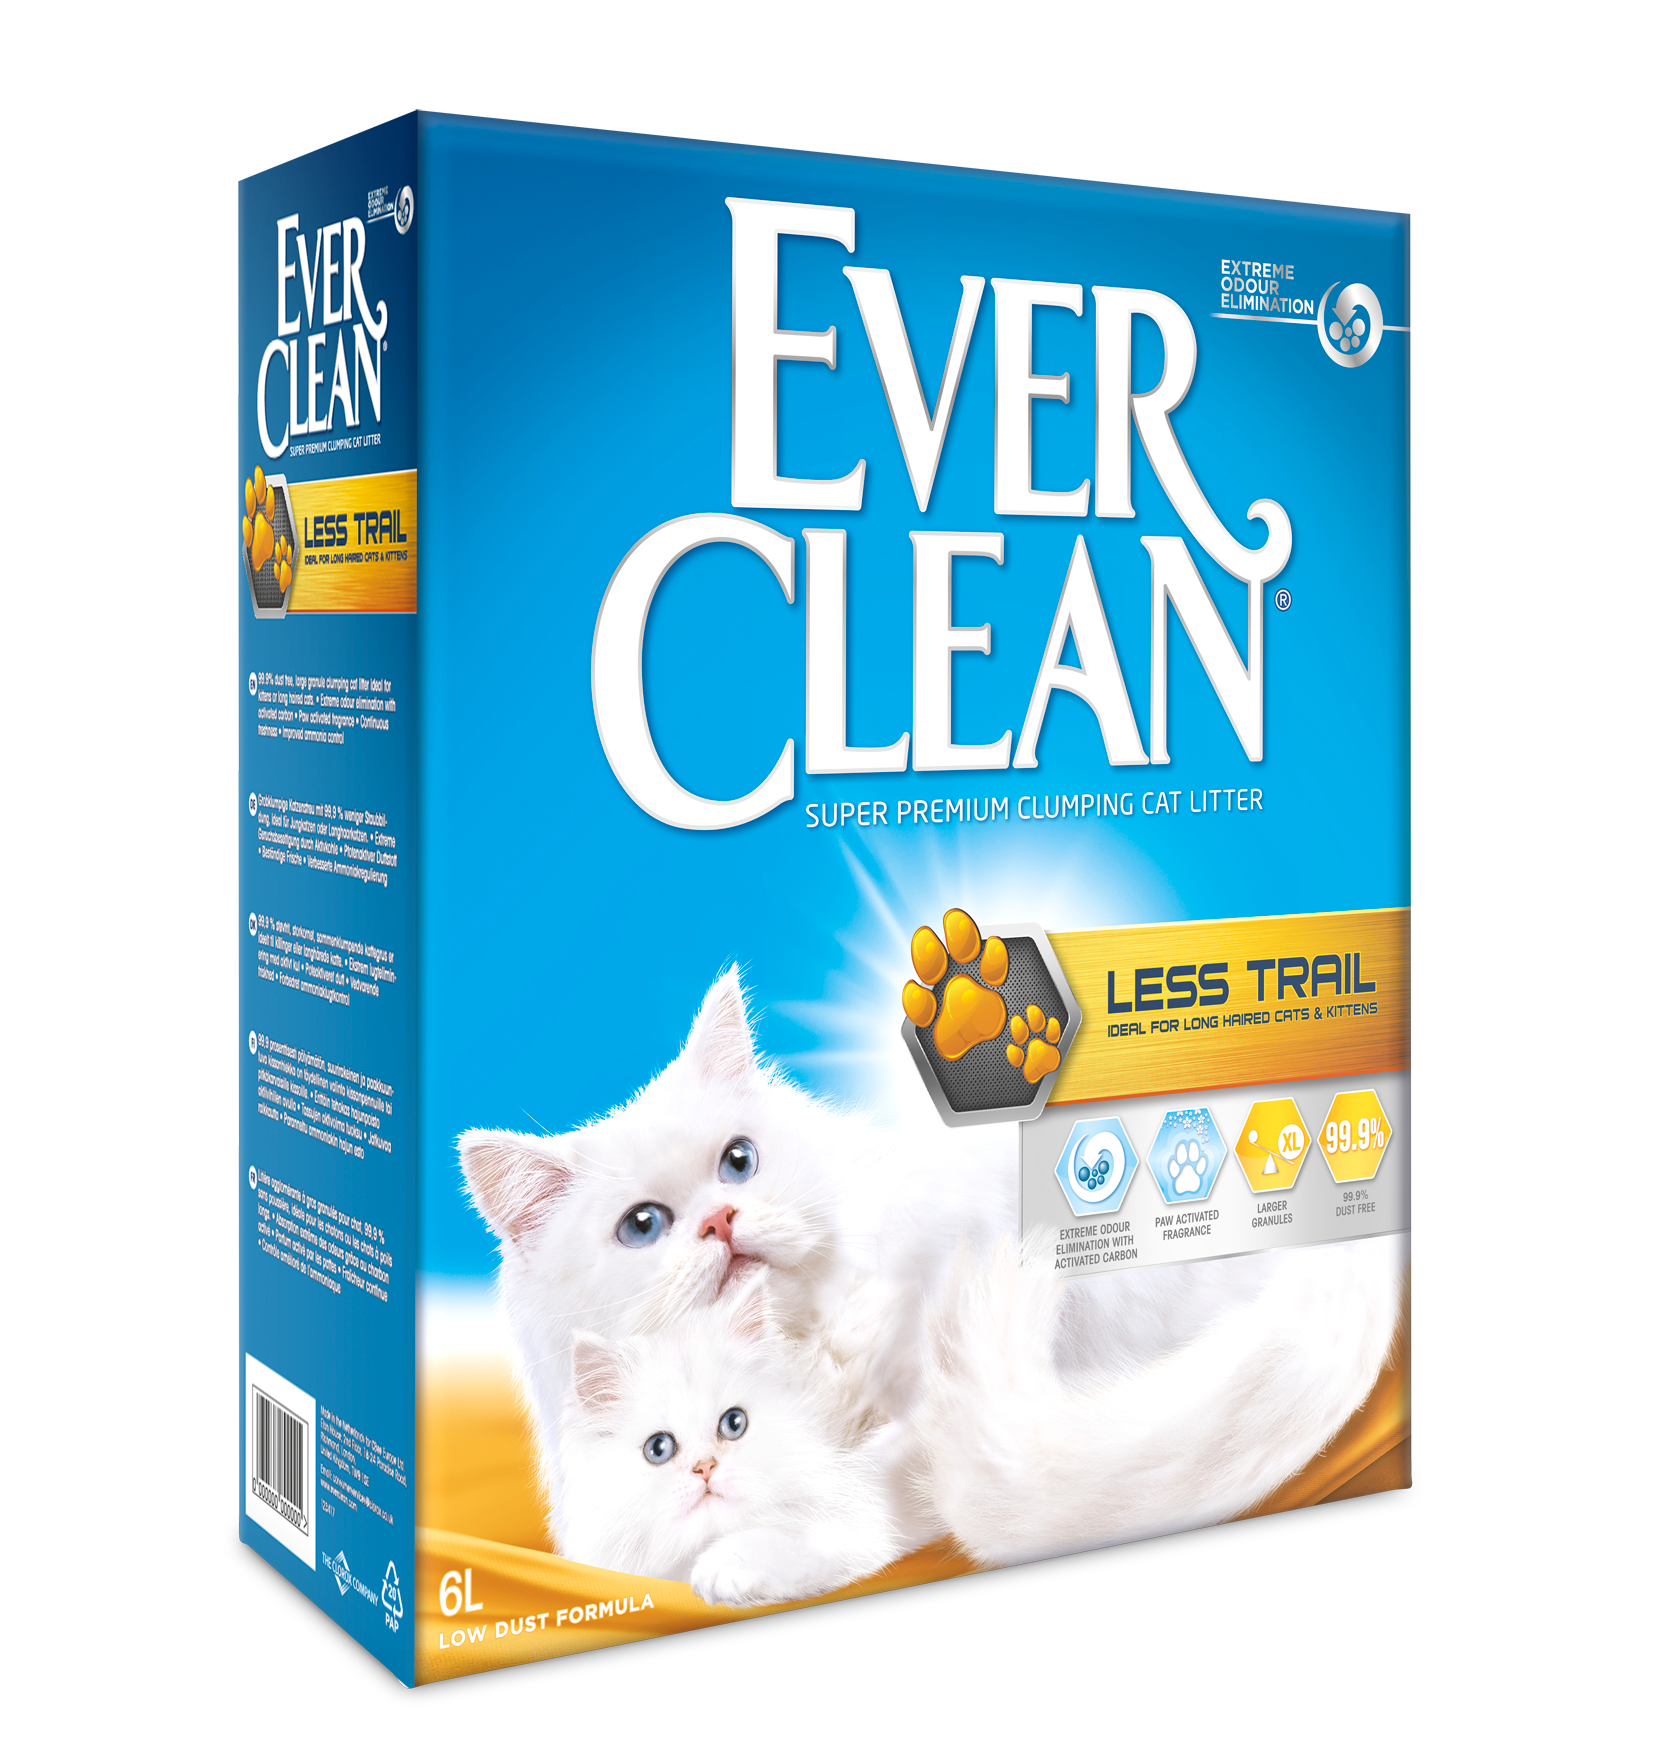 EVER CLEAN Less Trail 6L